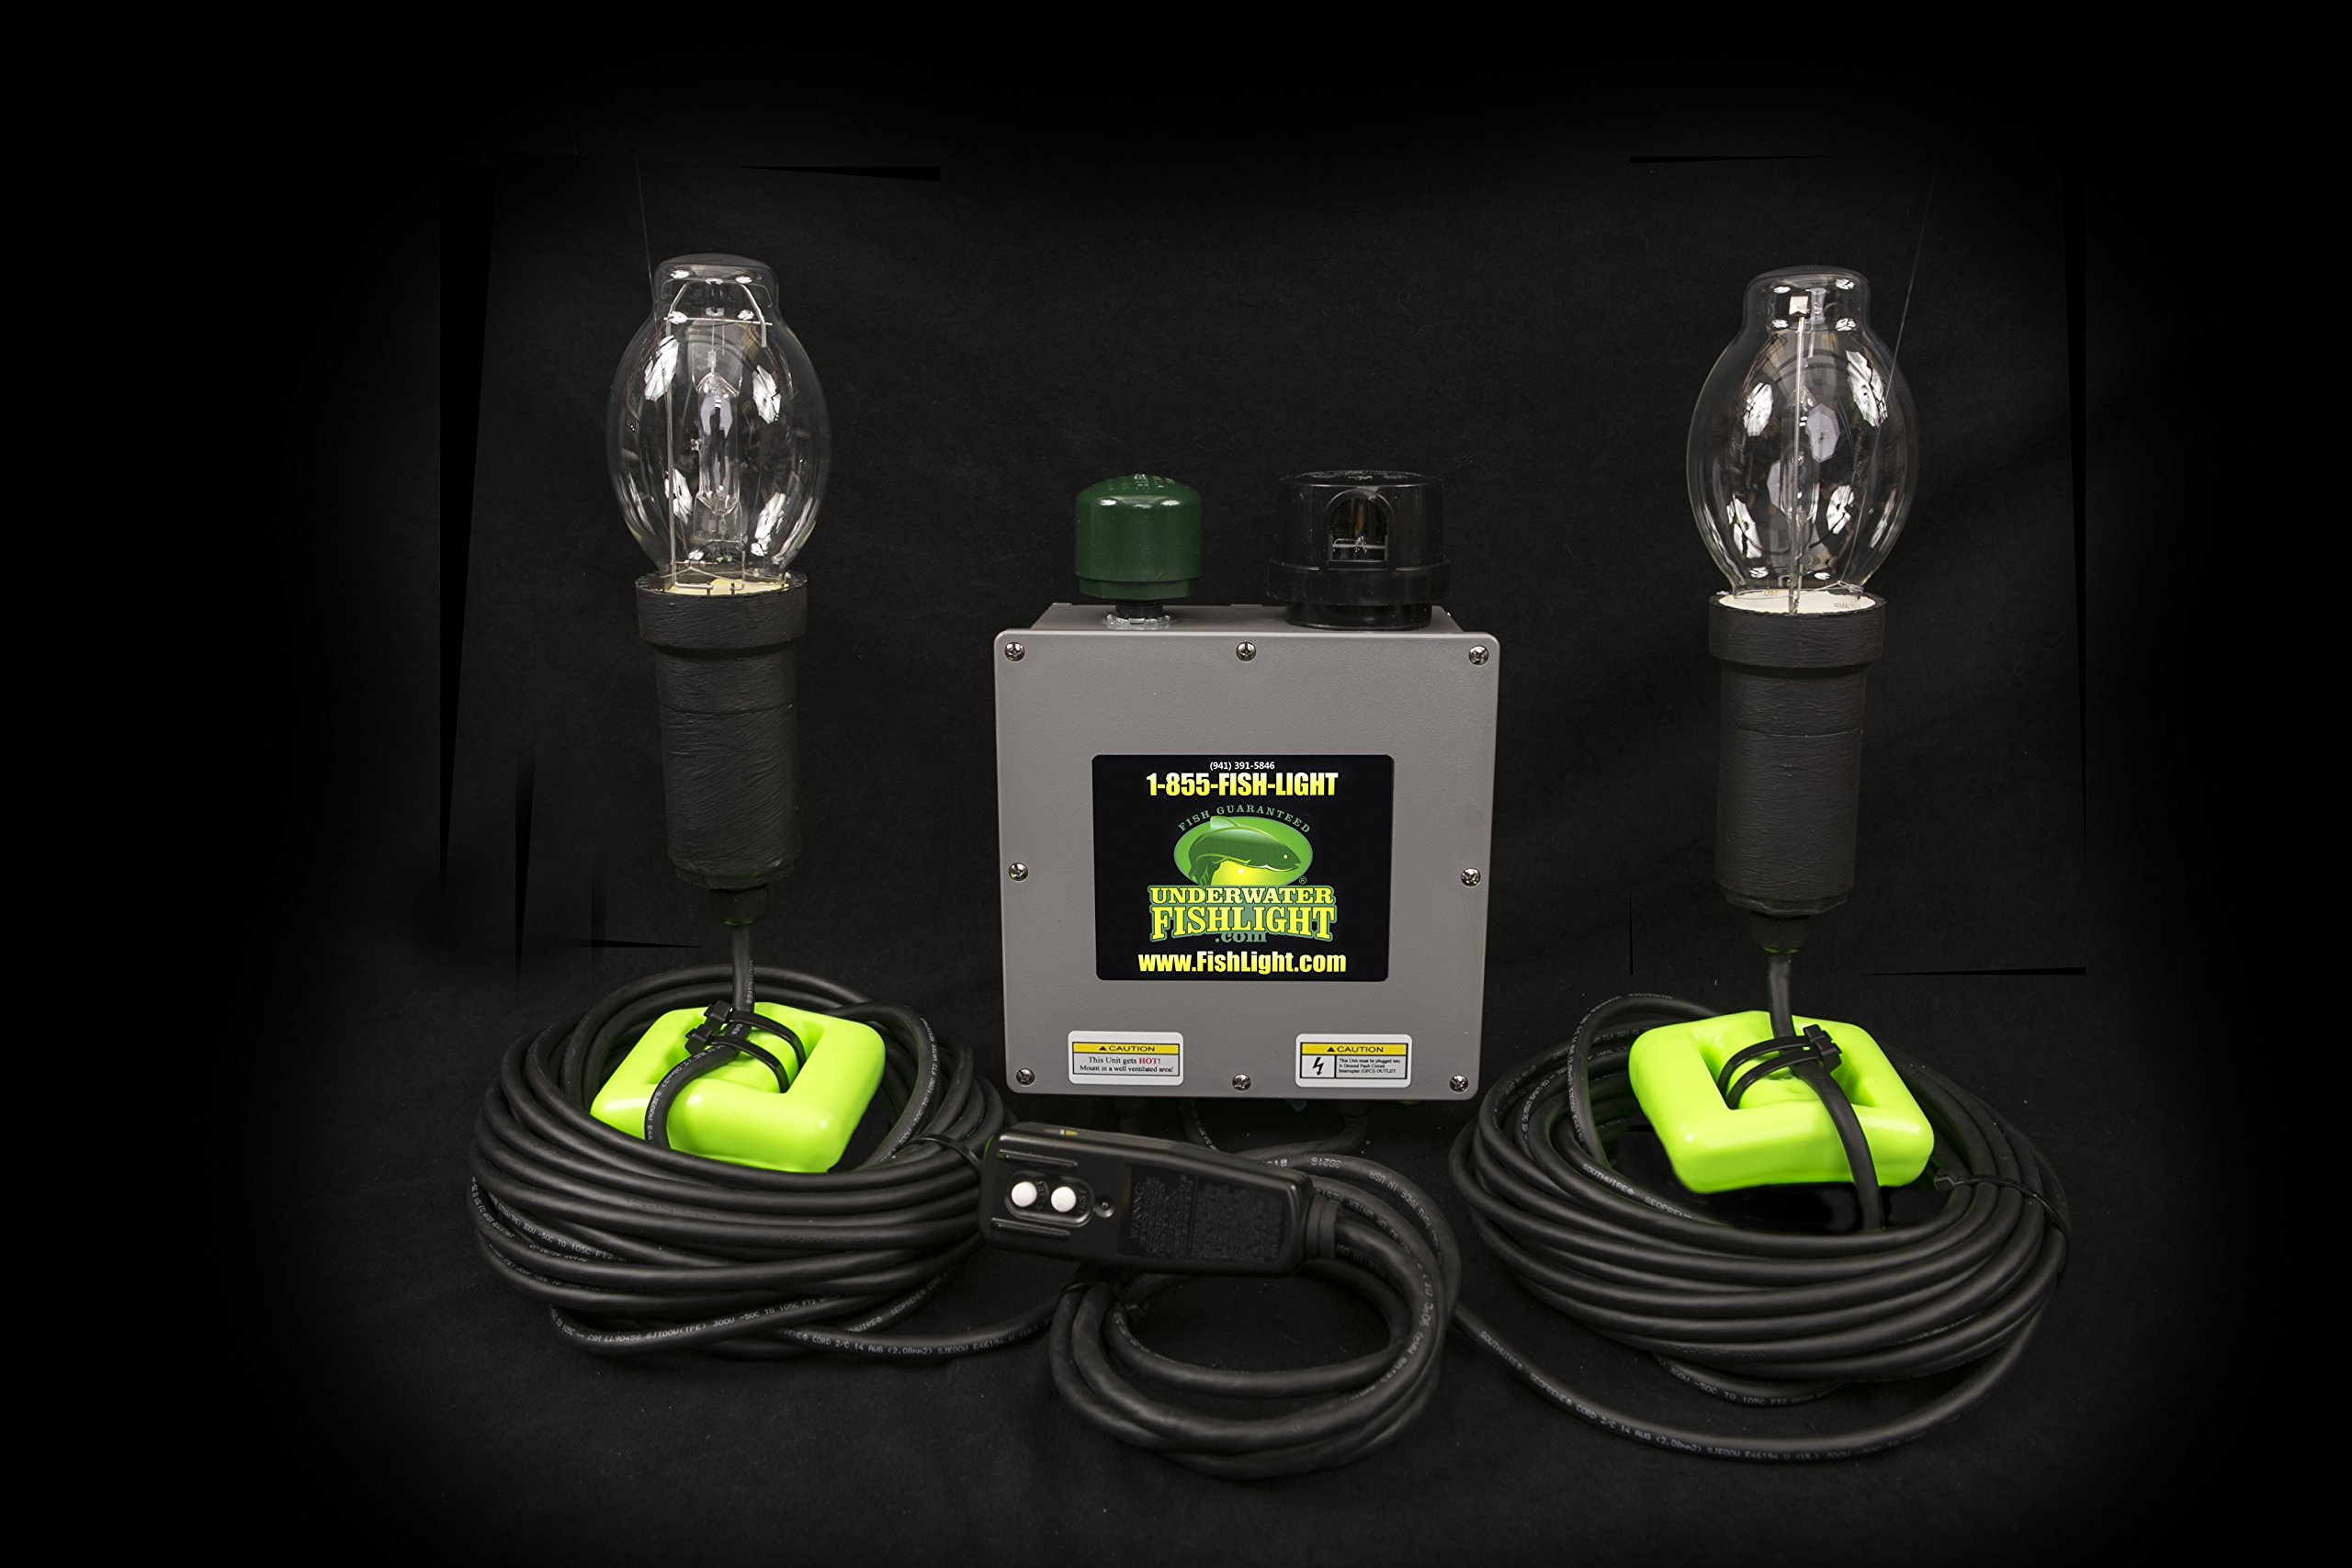 Underwater Fish Light - Double Bulb Underwater Dock Light 50ft Wires by UnderwaterFishLight.com